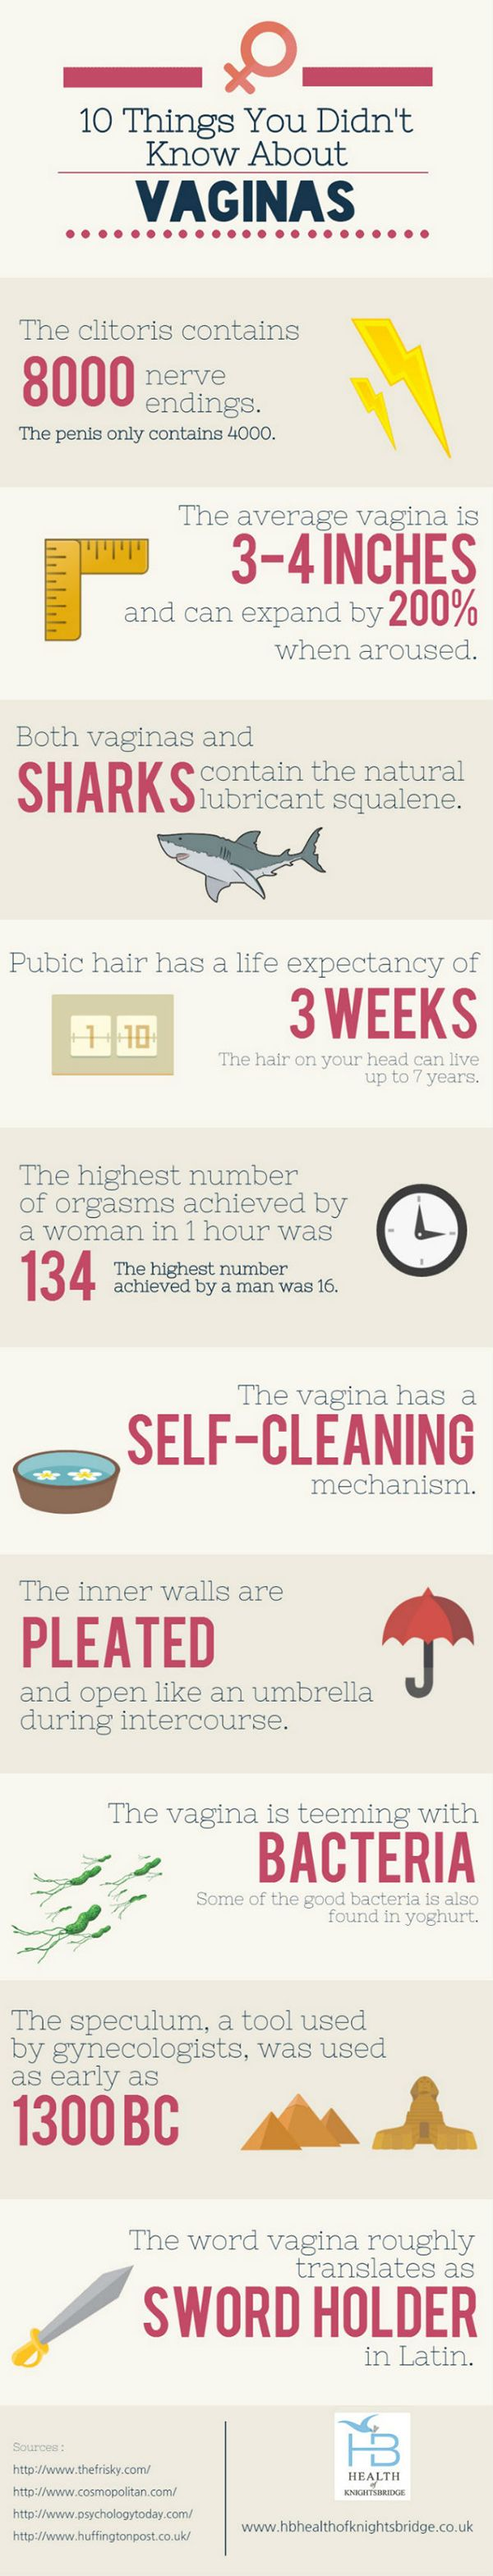 10 Things You Didn't Know About Vaginas #Infographic